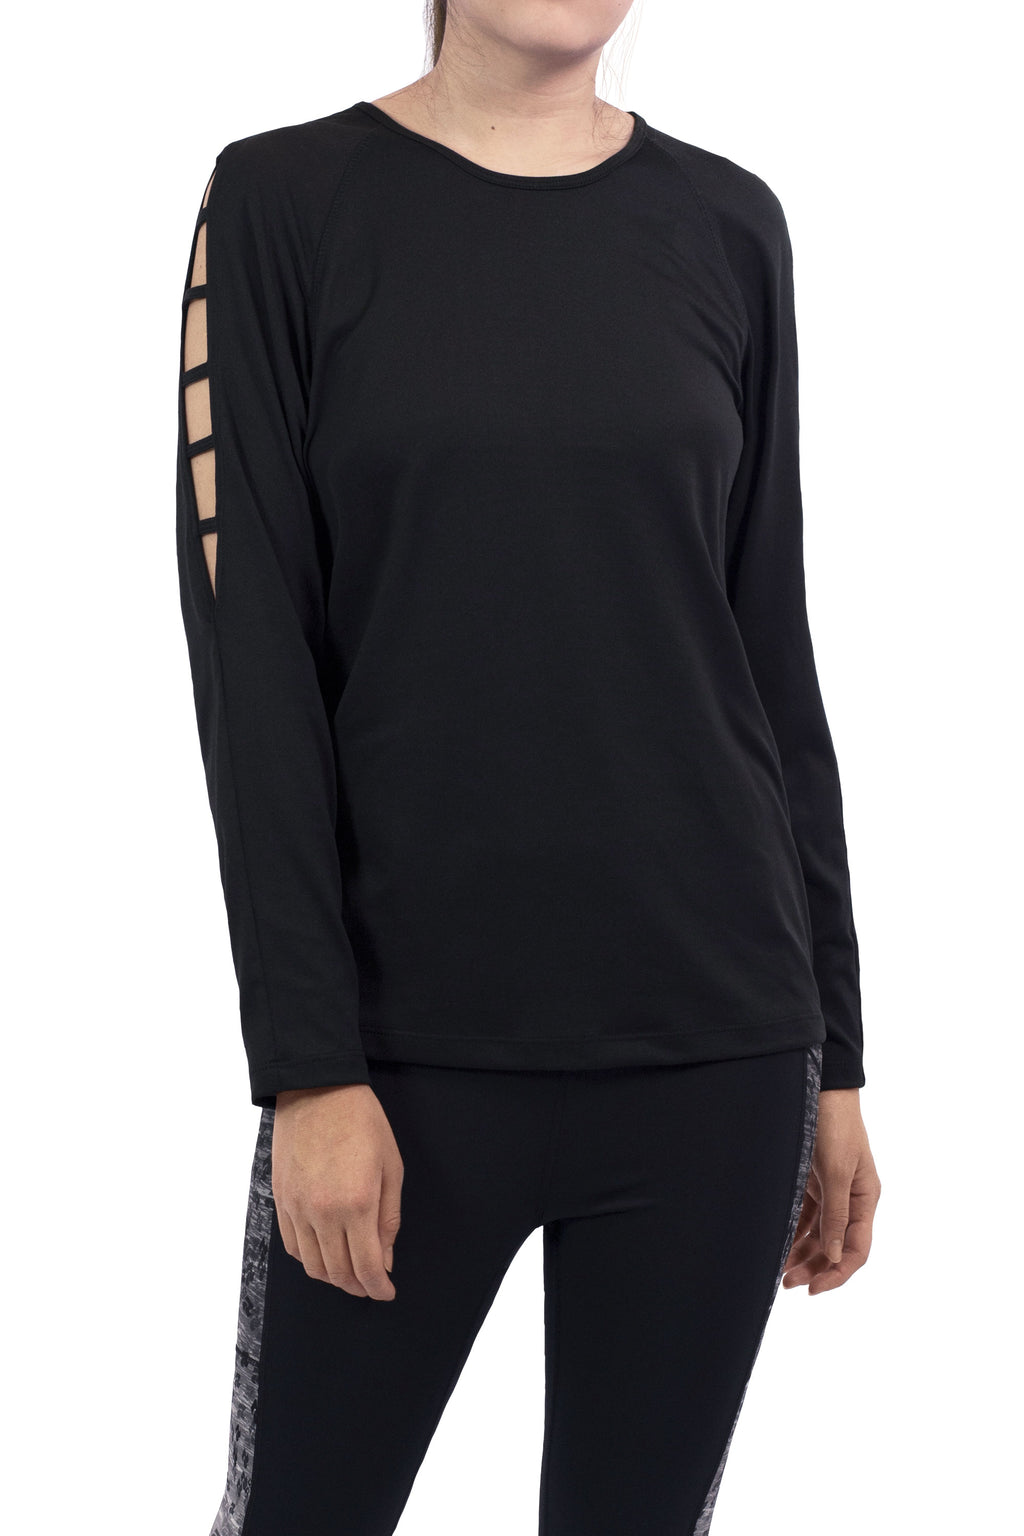 Influence Women's Long Sleeve With Open Shoulder Top